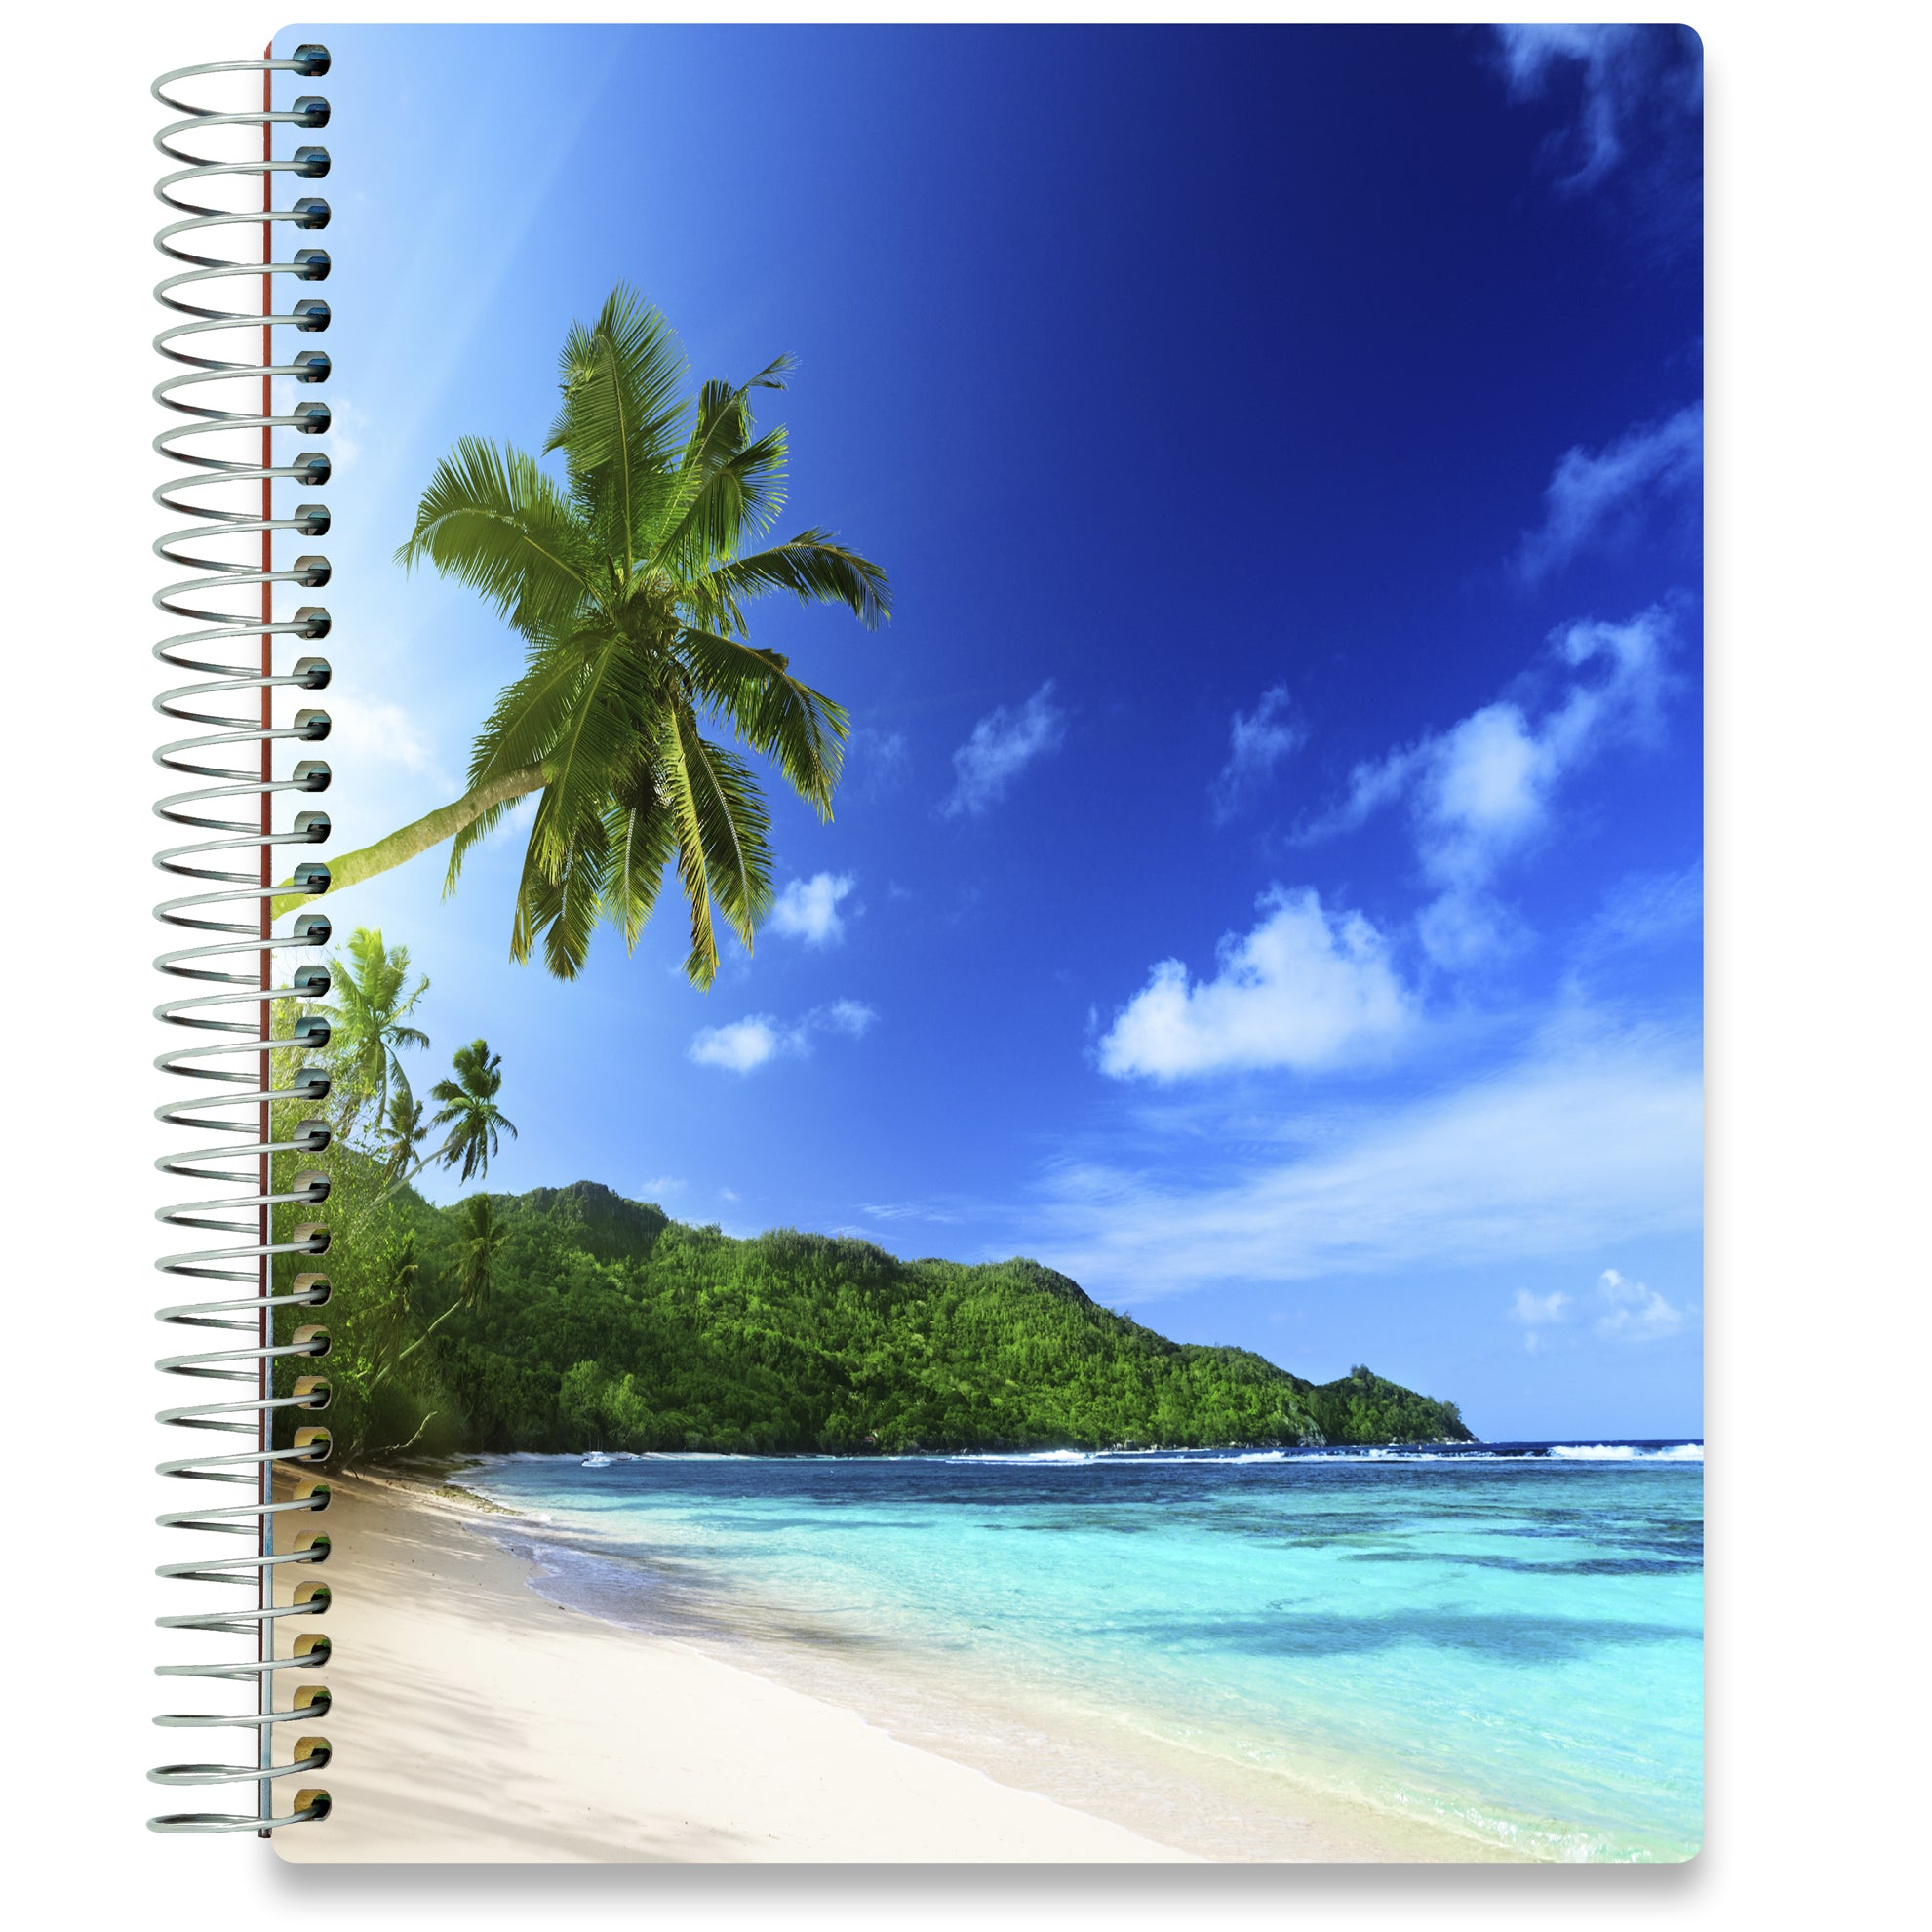 NEW: April 2020-2021 Planner - 8.5x11 - Blue Lagoon-Office Product-Tools4Wisdom